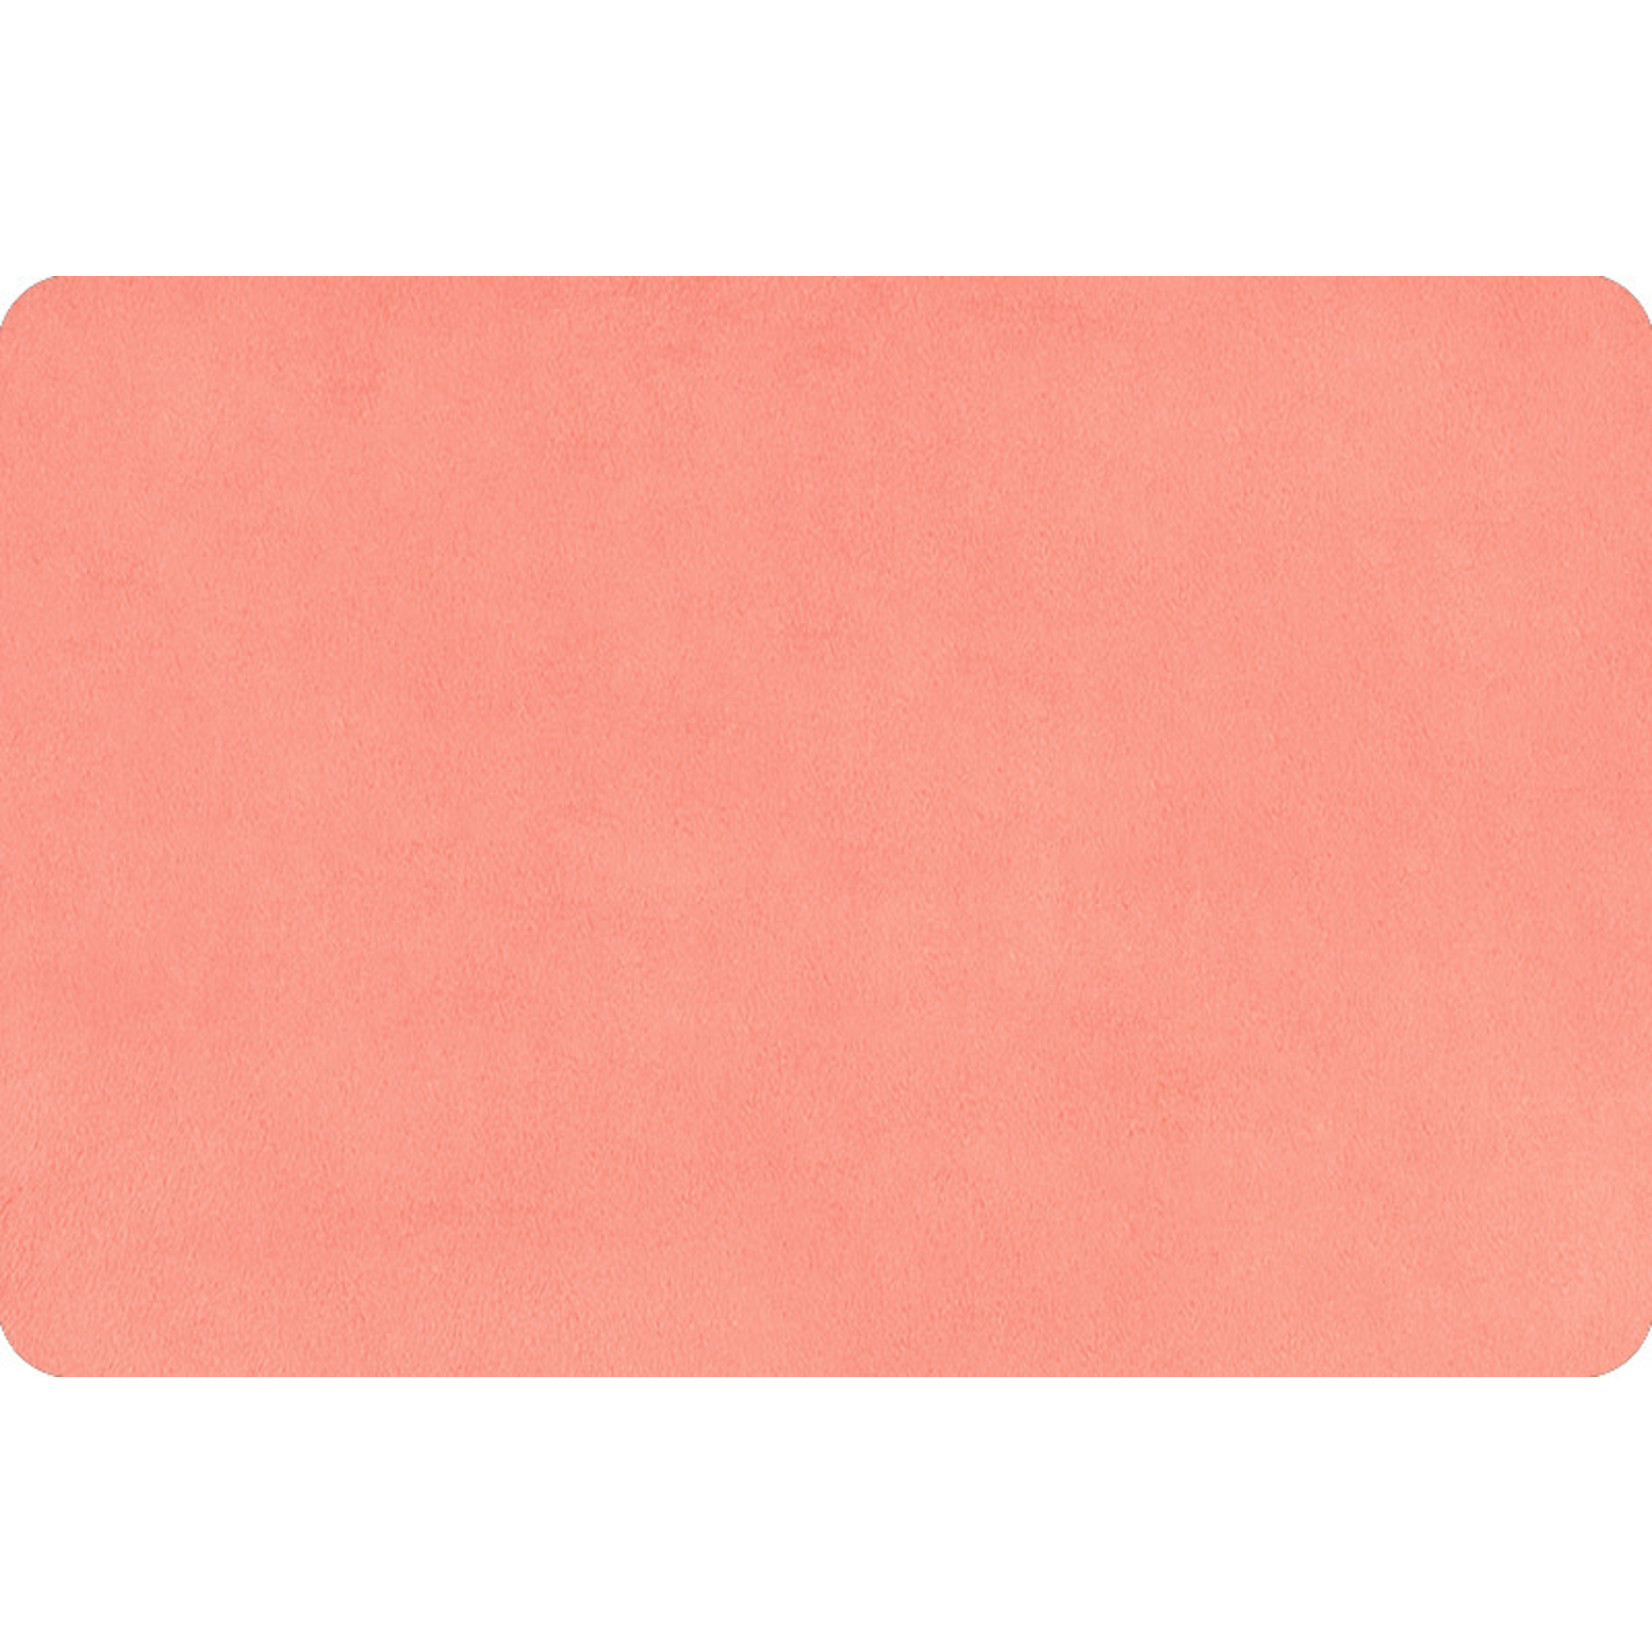 """Shannon Fabrics Minky, Extra Wide Solid Cuddle3, 90"""" Coral, (by the inch)"""